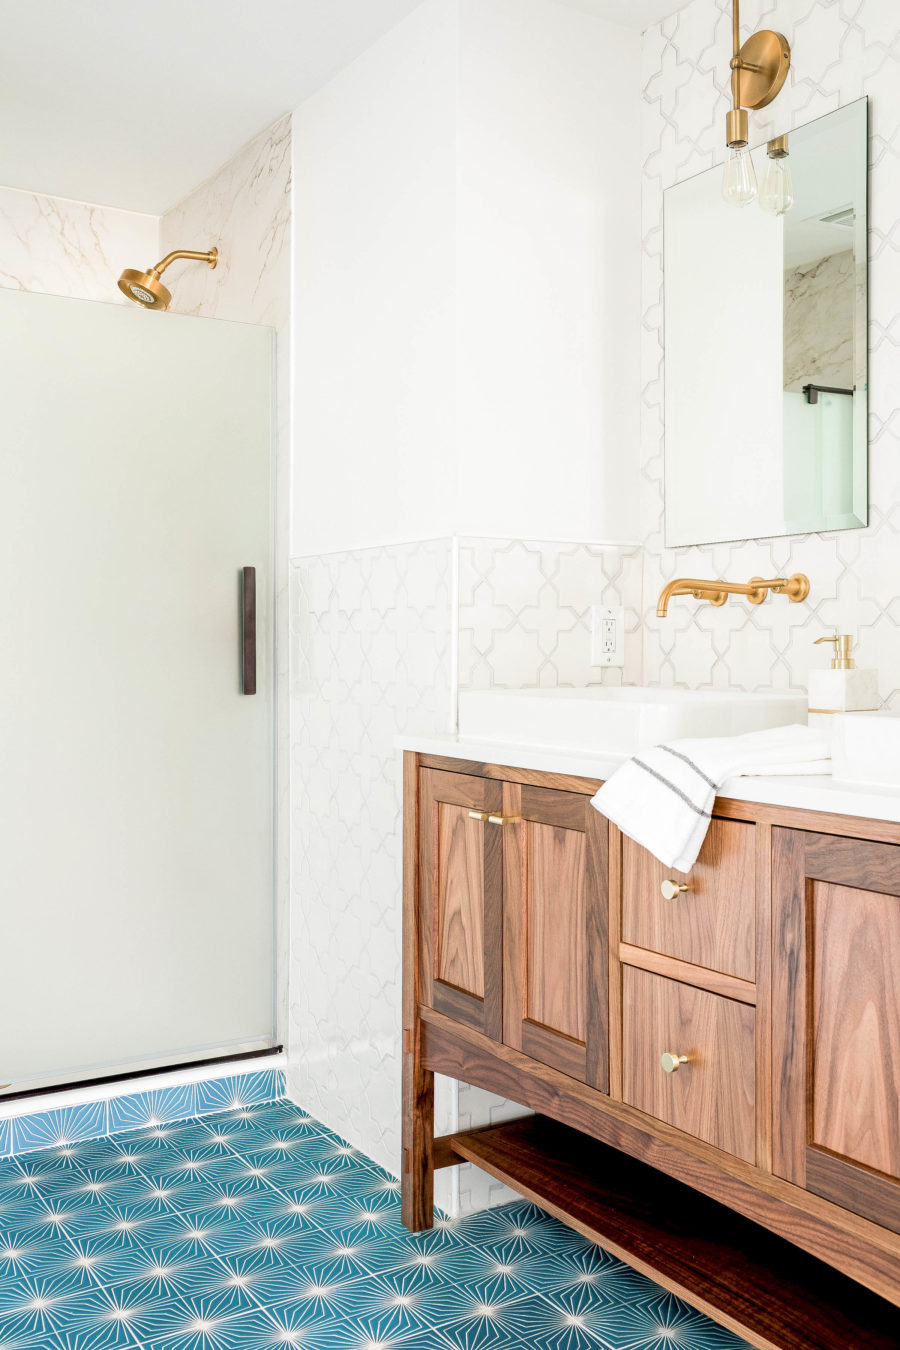 Bathroom Reveal! (The one with the Alpaca.) | In Honor Of Design